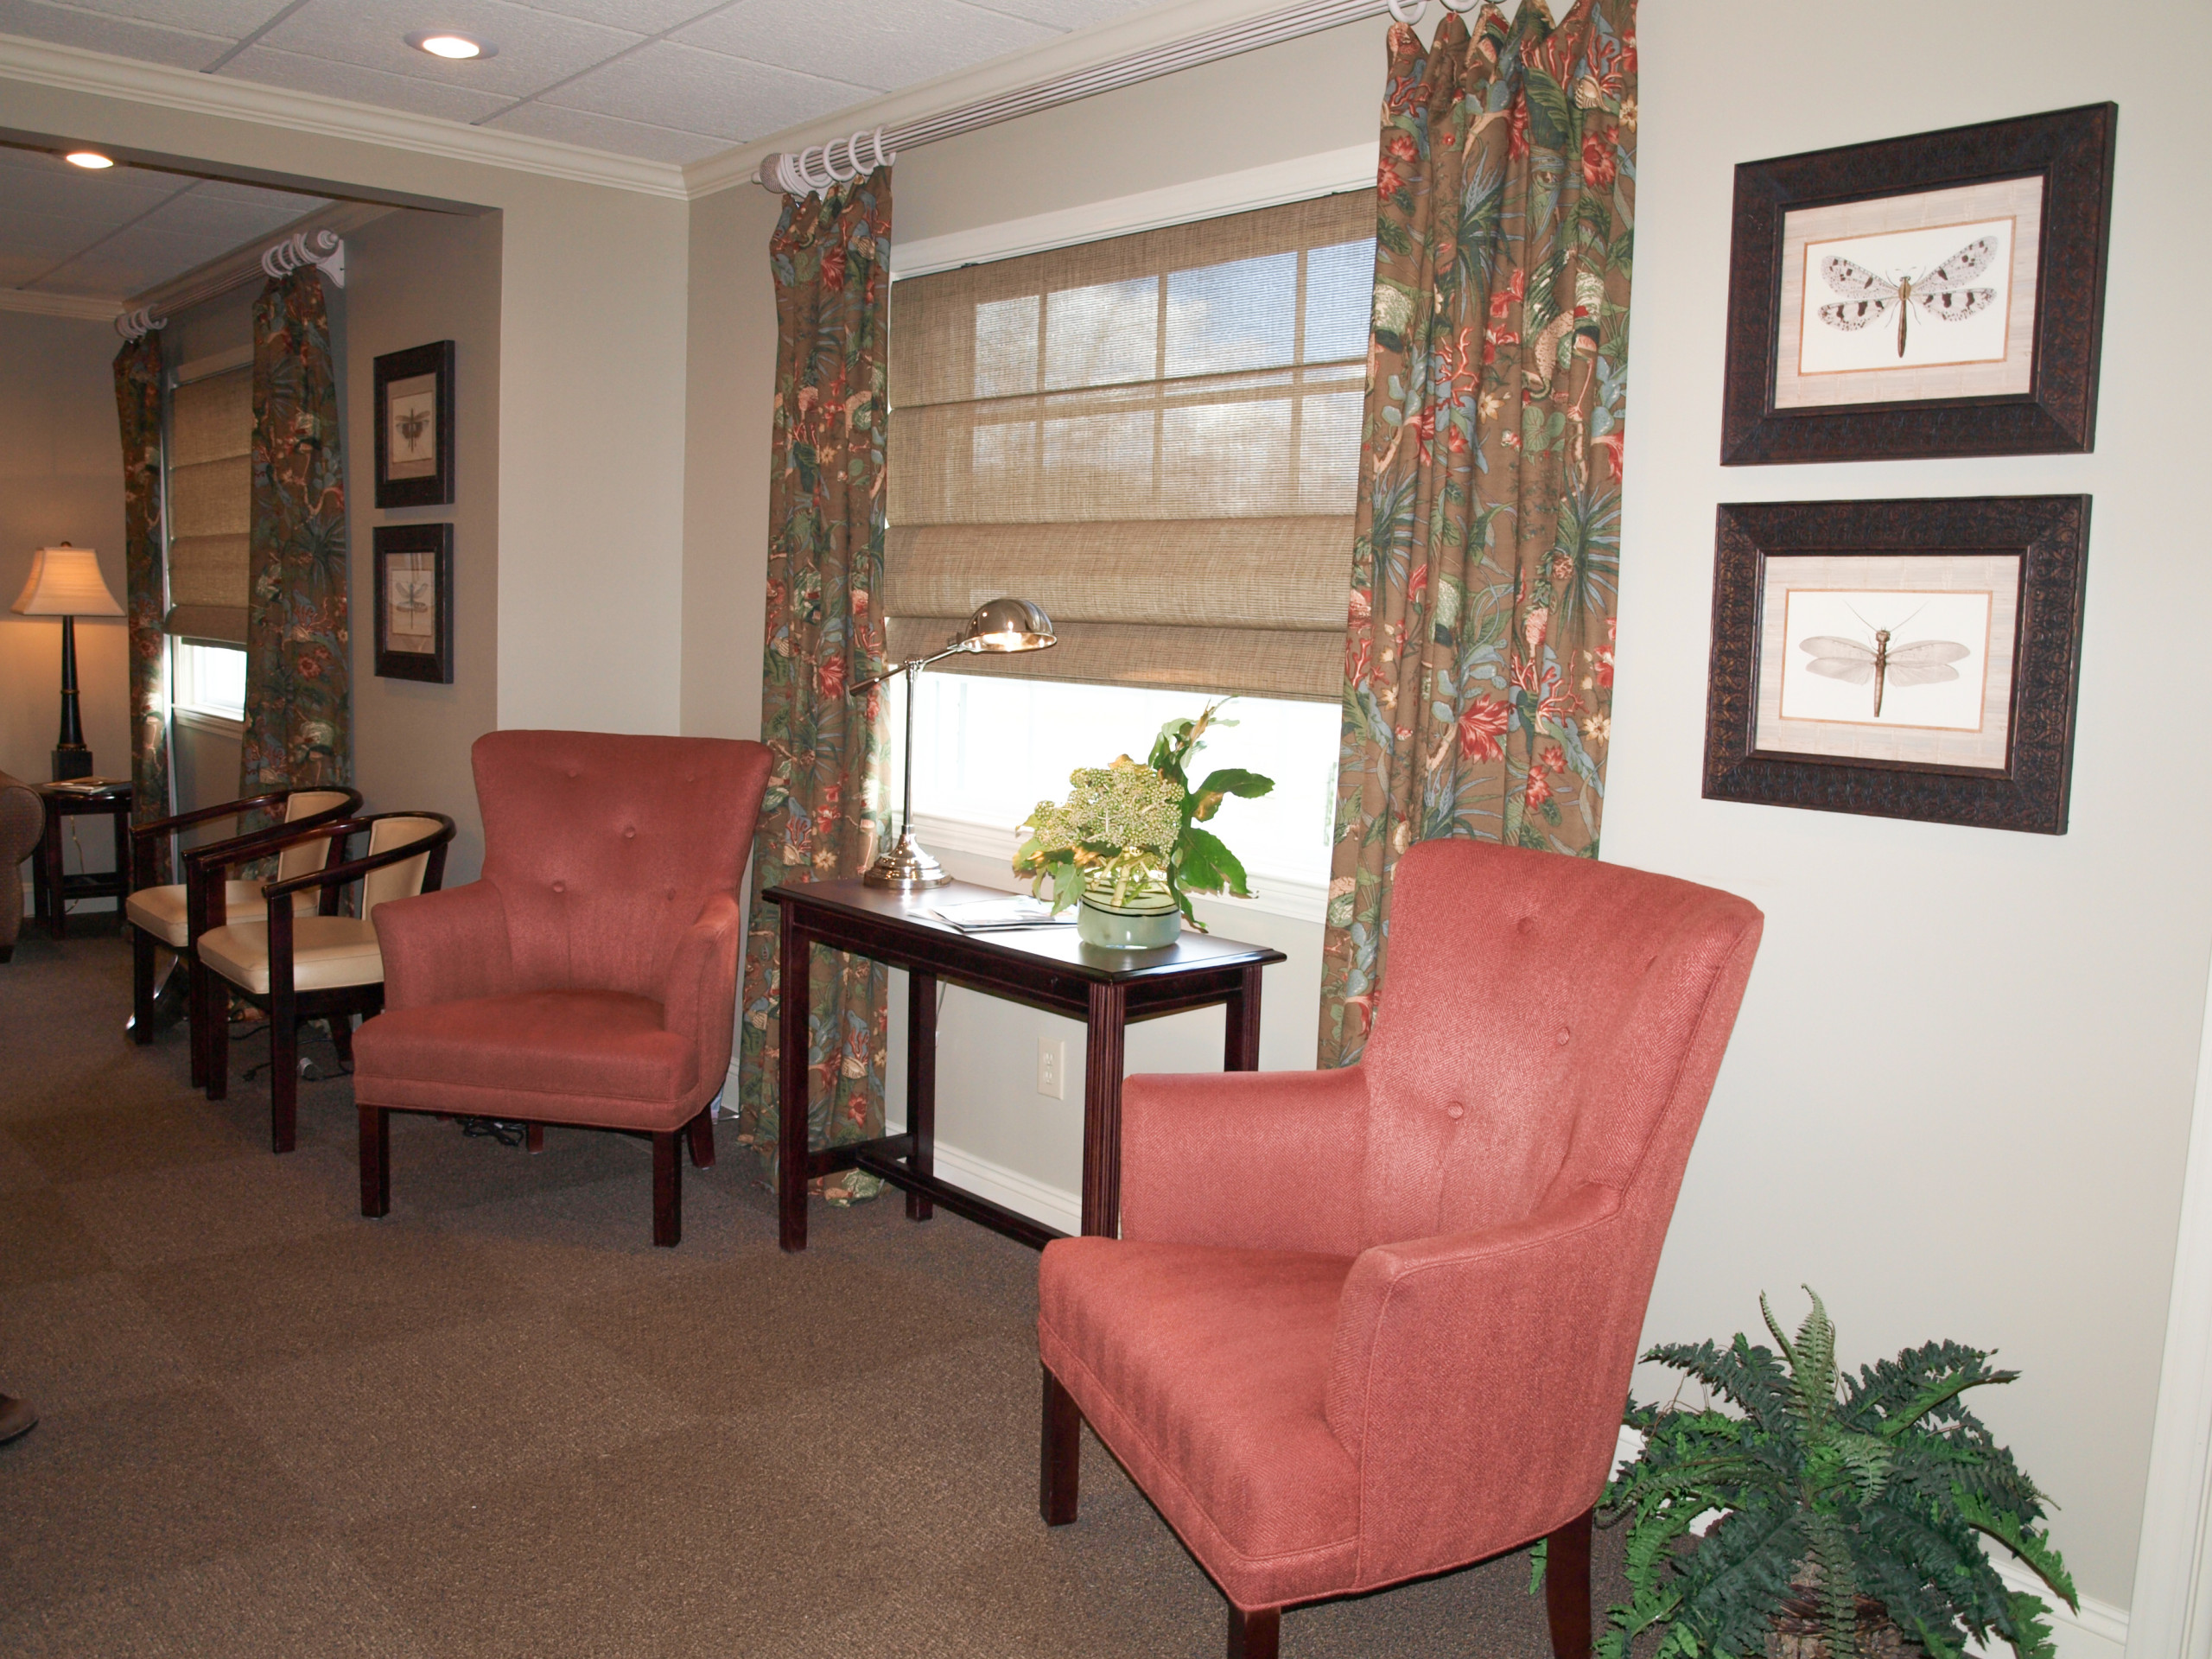 Healthcare: Waiting Room